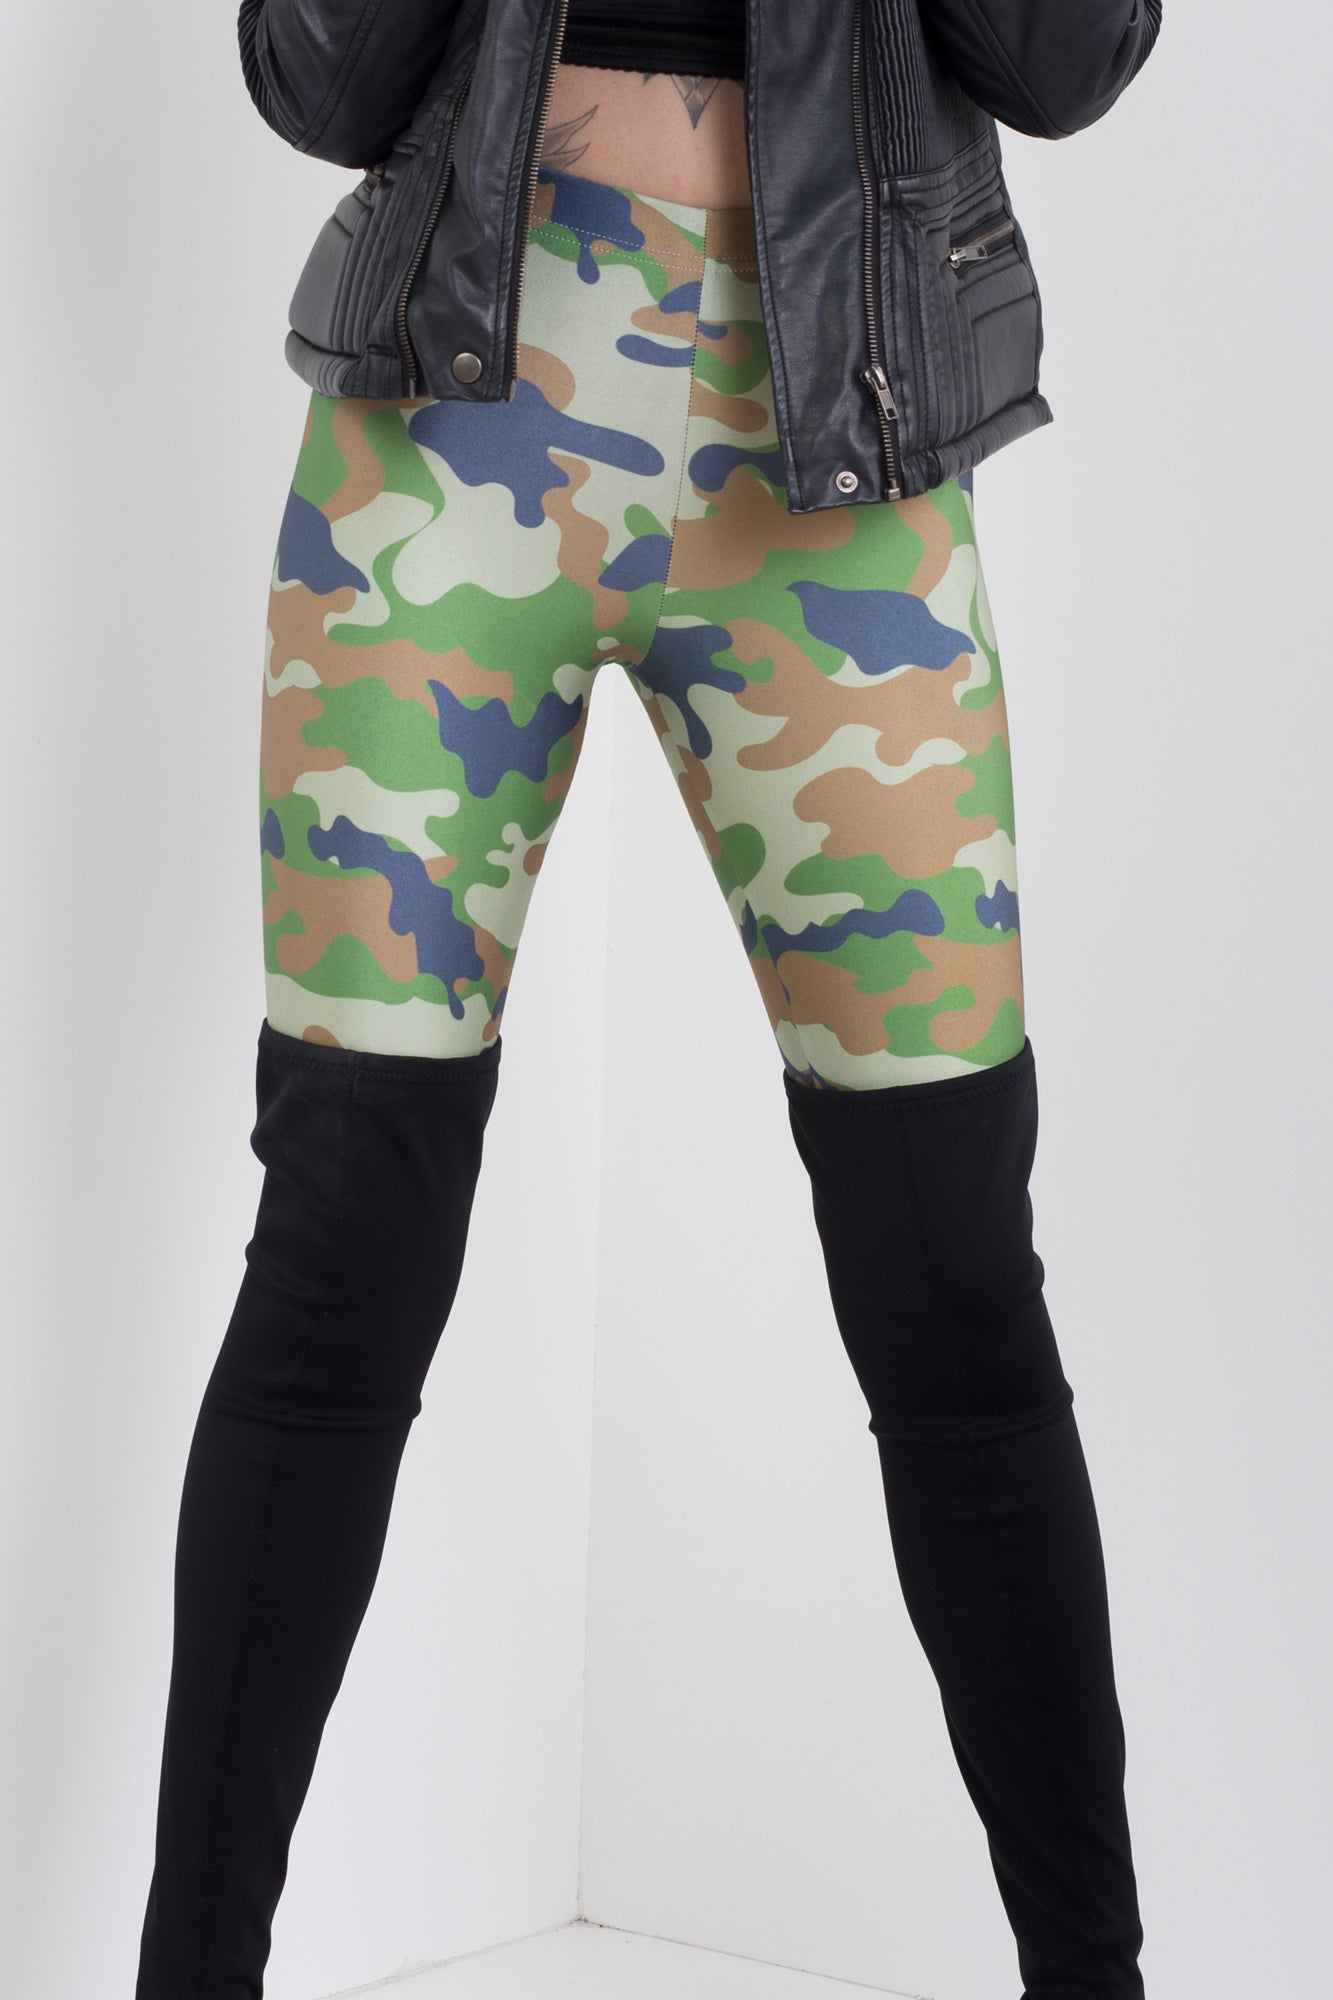 Soldier Leggings